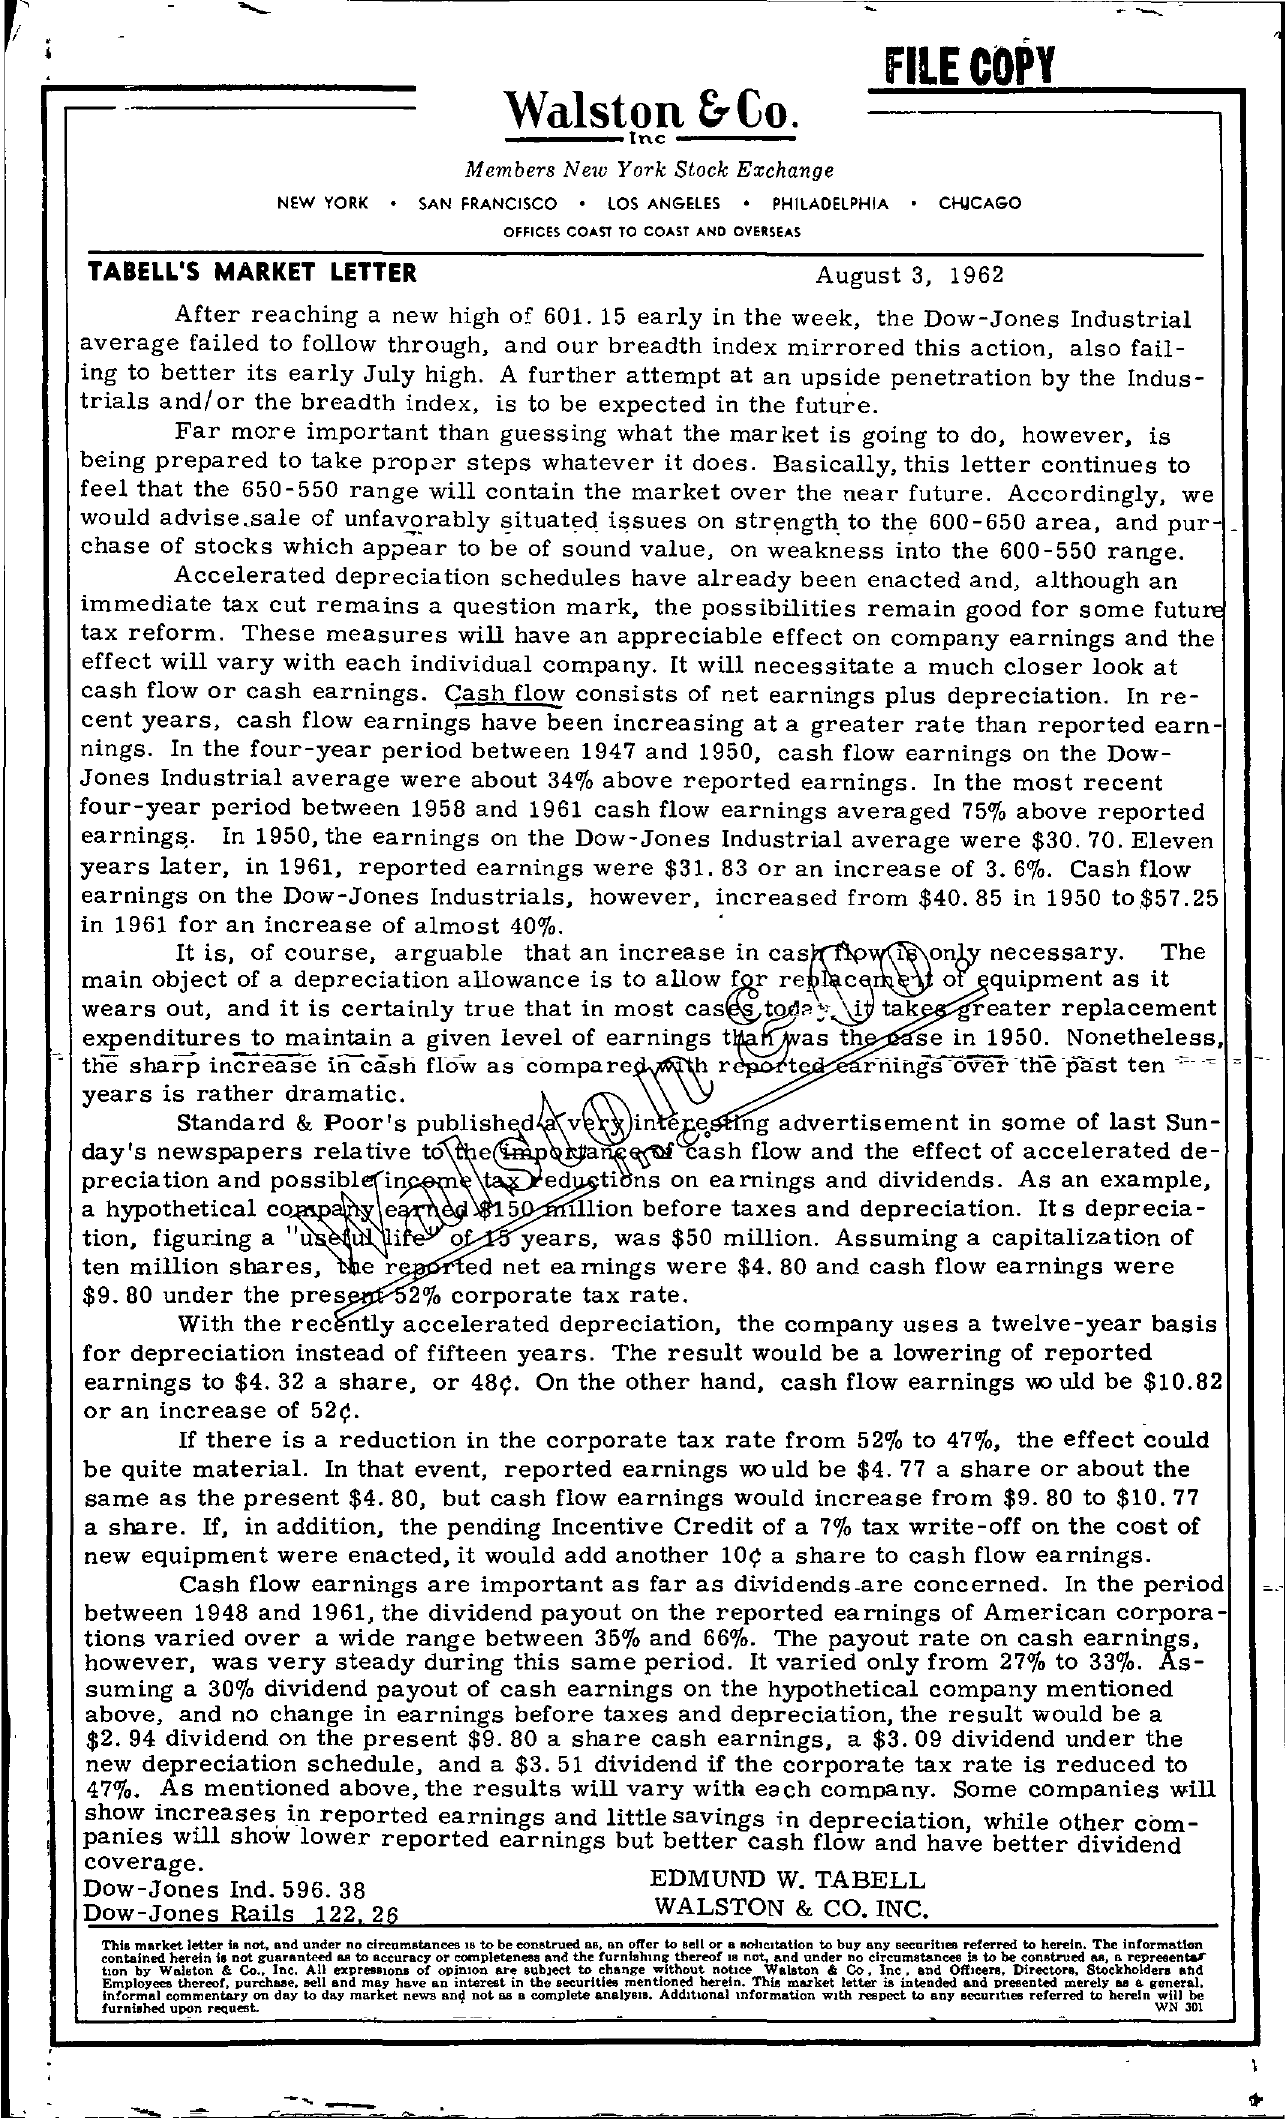 Tabell's Market Letter - August 03, 1962